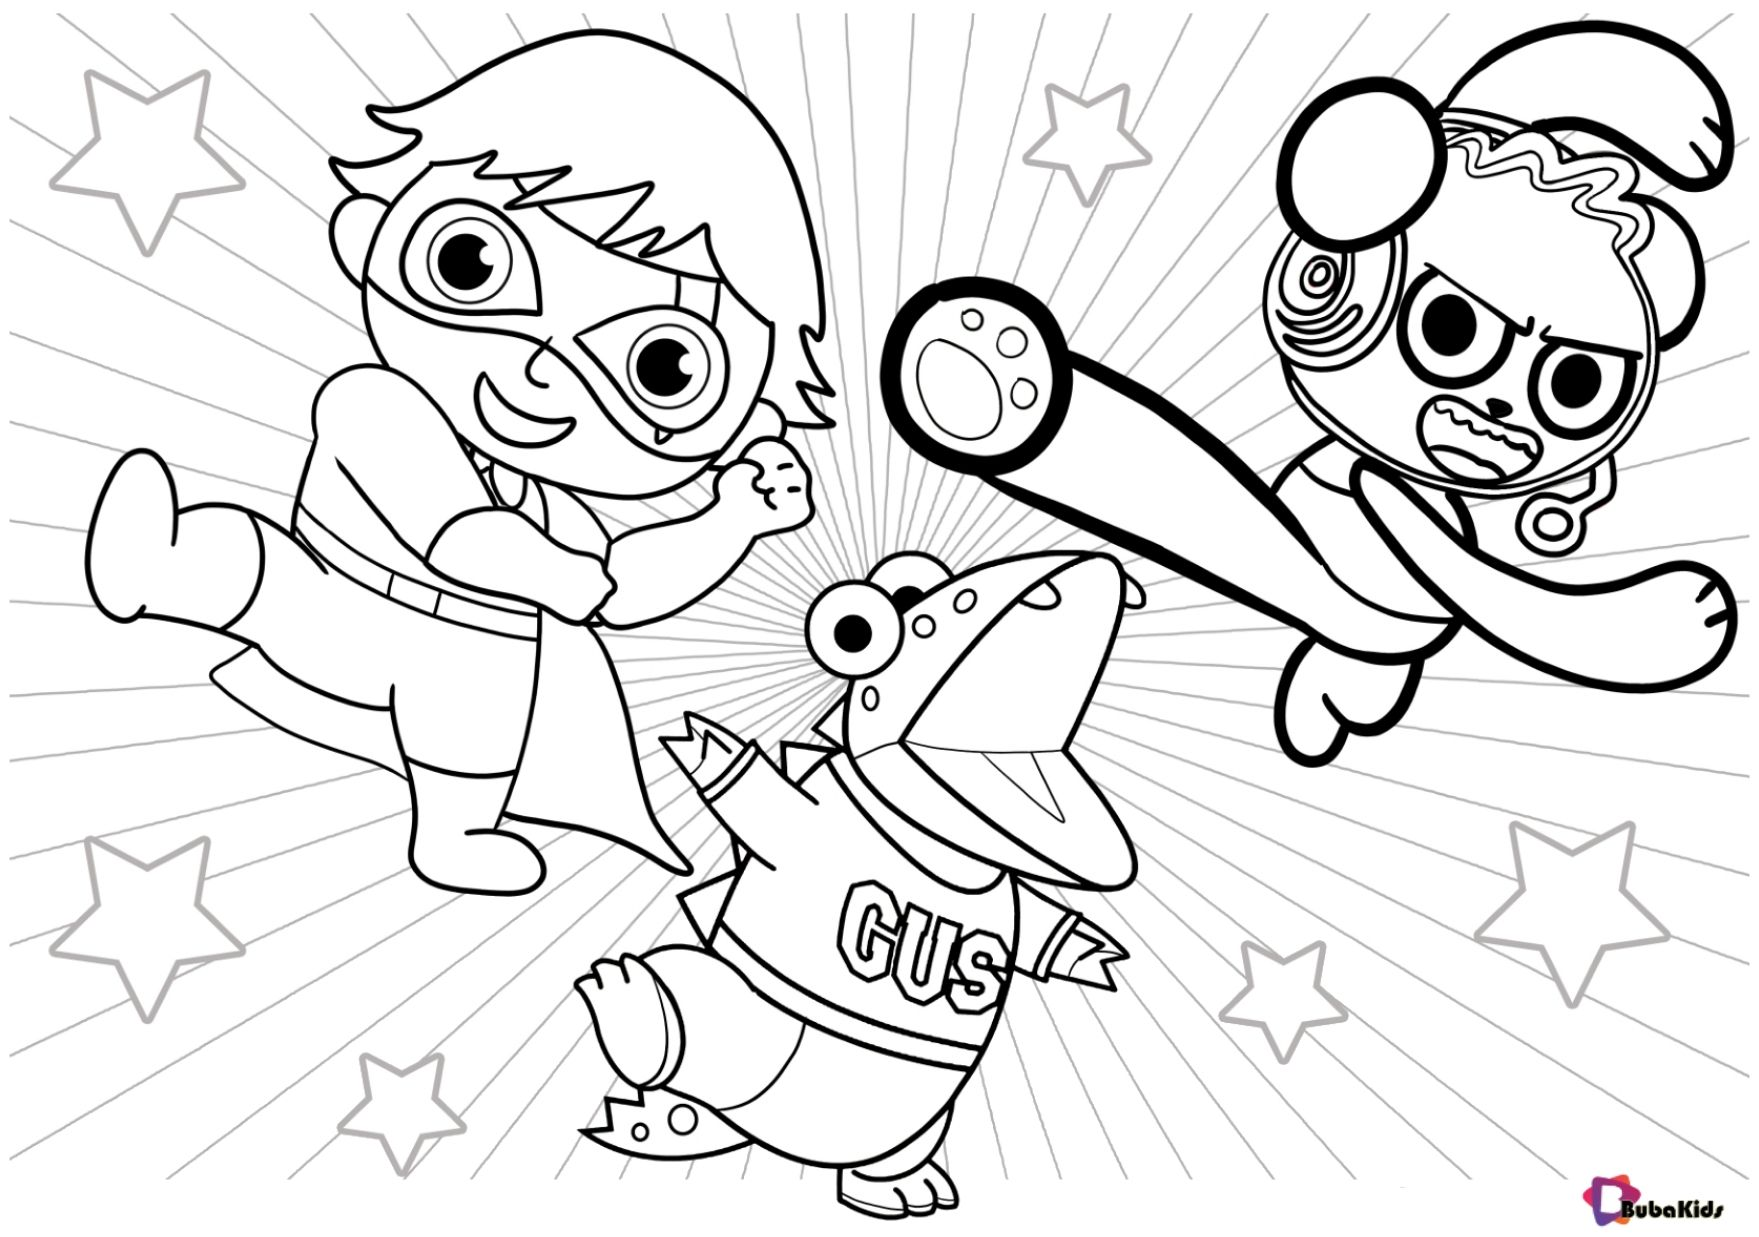 Ryan S World Printable Coloring Page Collection Of Cartoon Coloring Pages For Teenage Printable Bunny Coloring Pages Printable Coloring Cartoon Coloring Pages